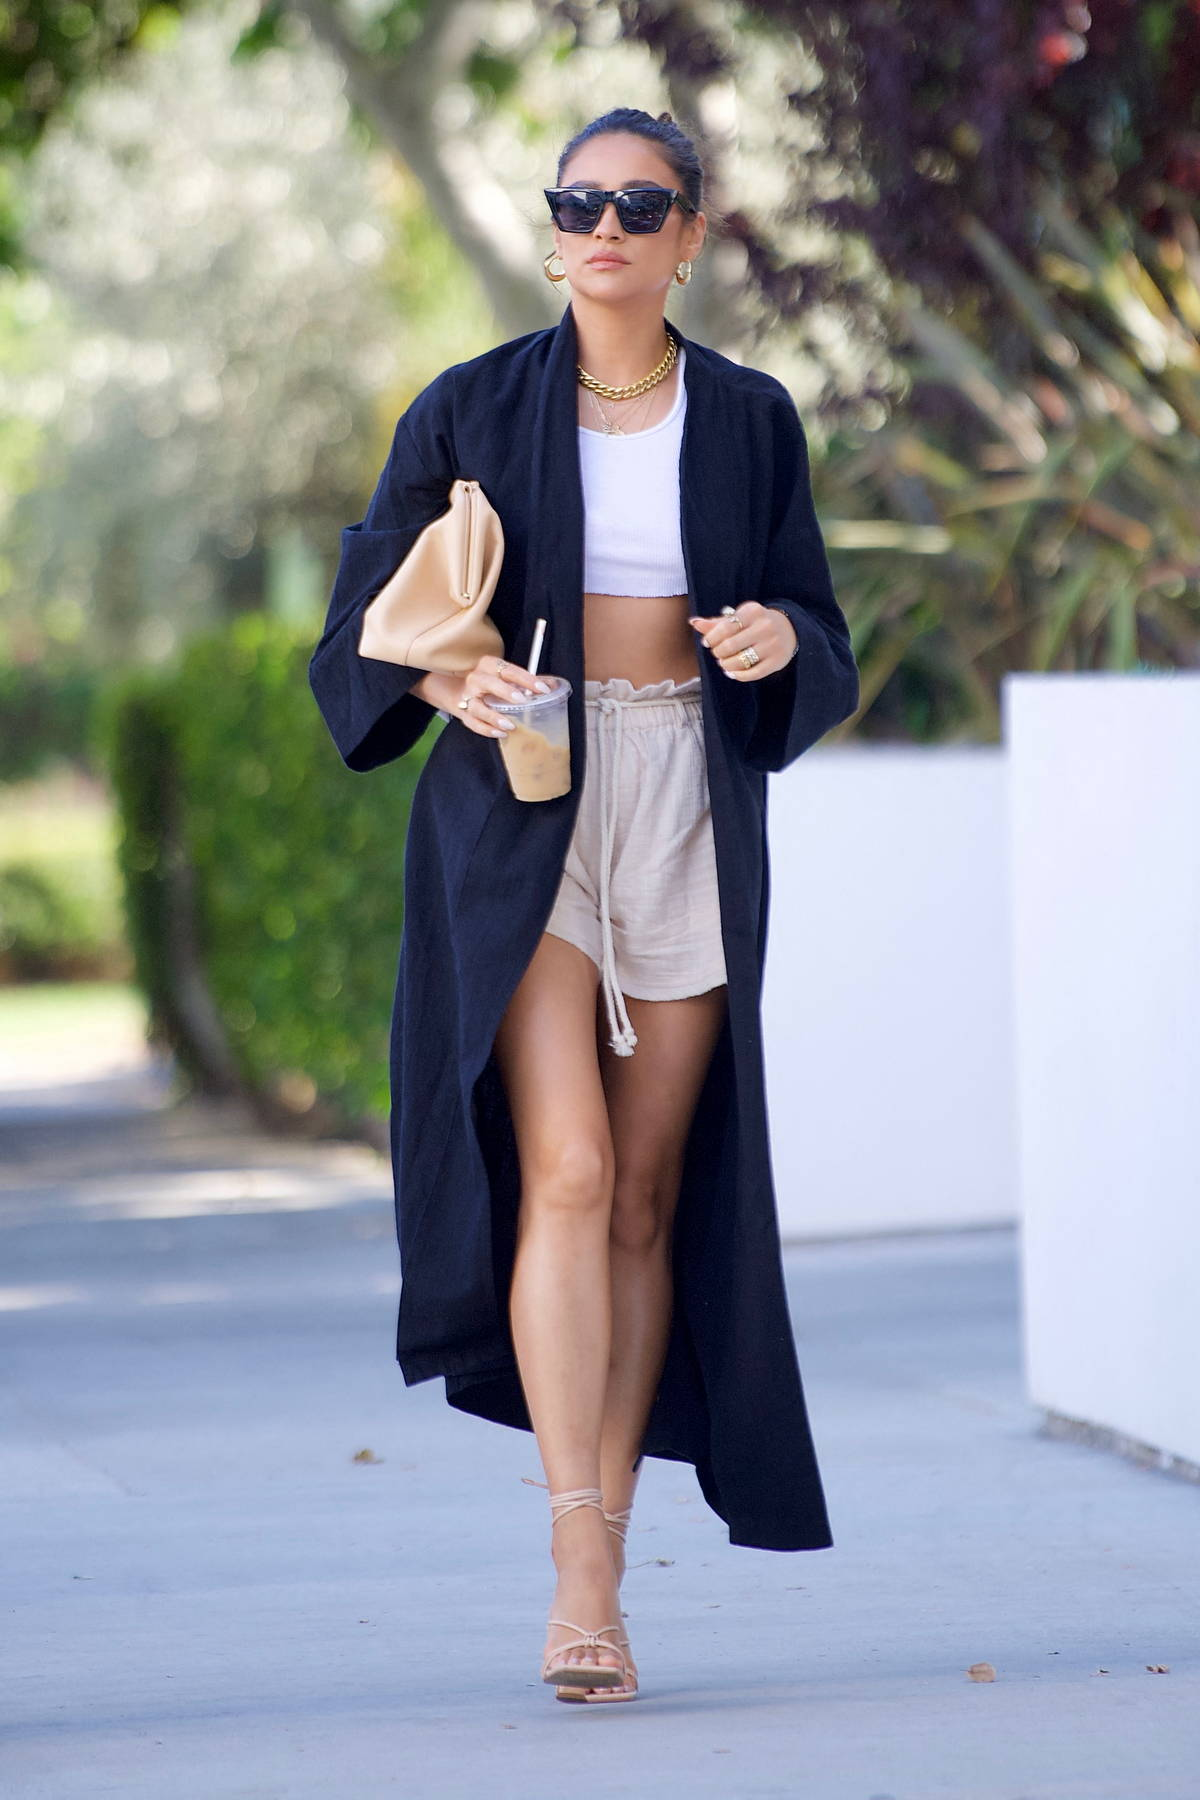 Shay Mitchell looks casually chic as she grabs an iced coffee while running errands in Beverly Hills, California